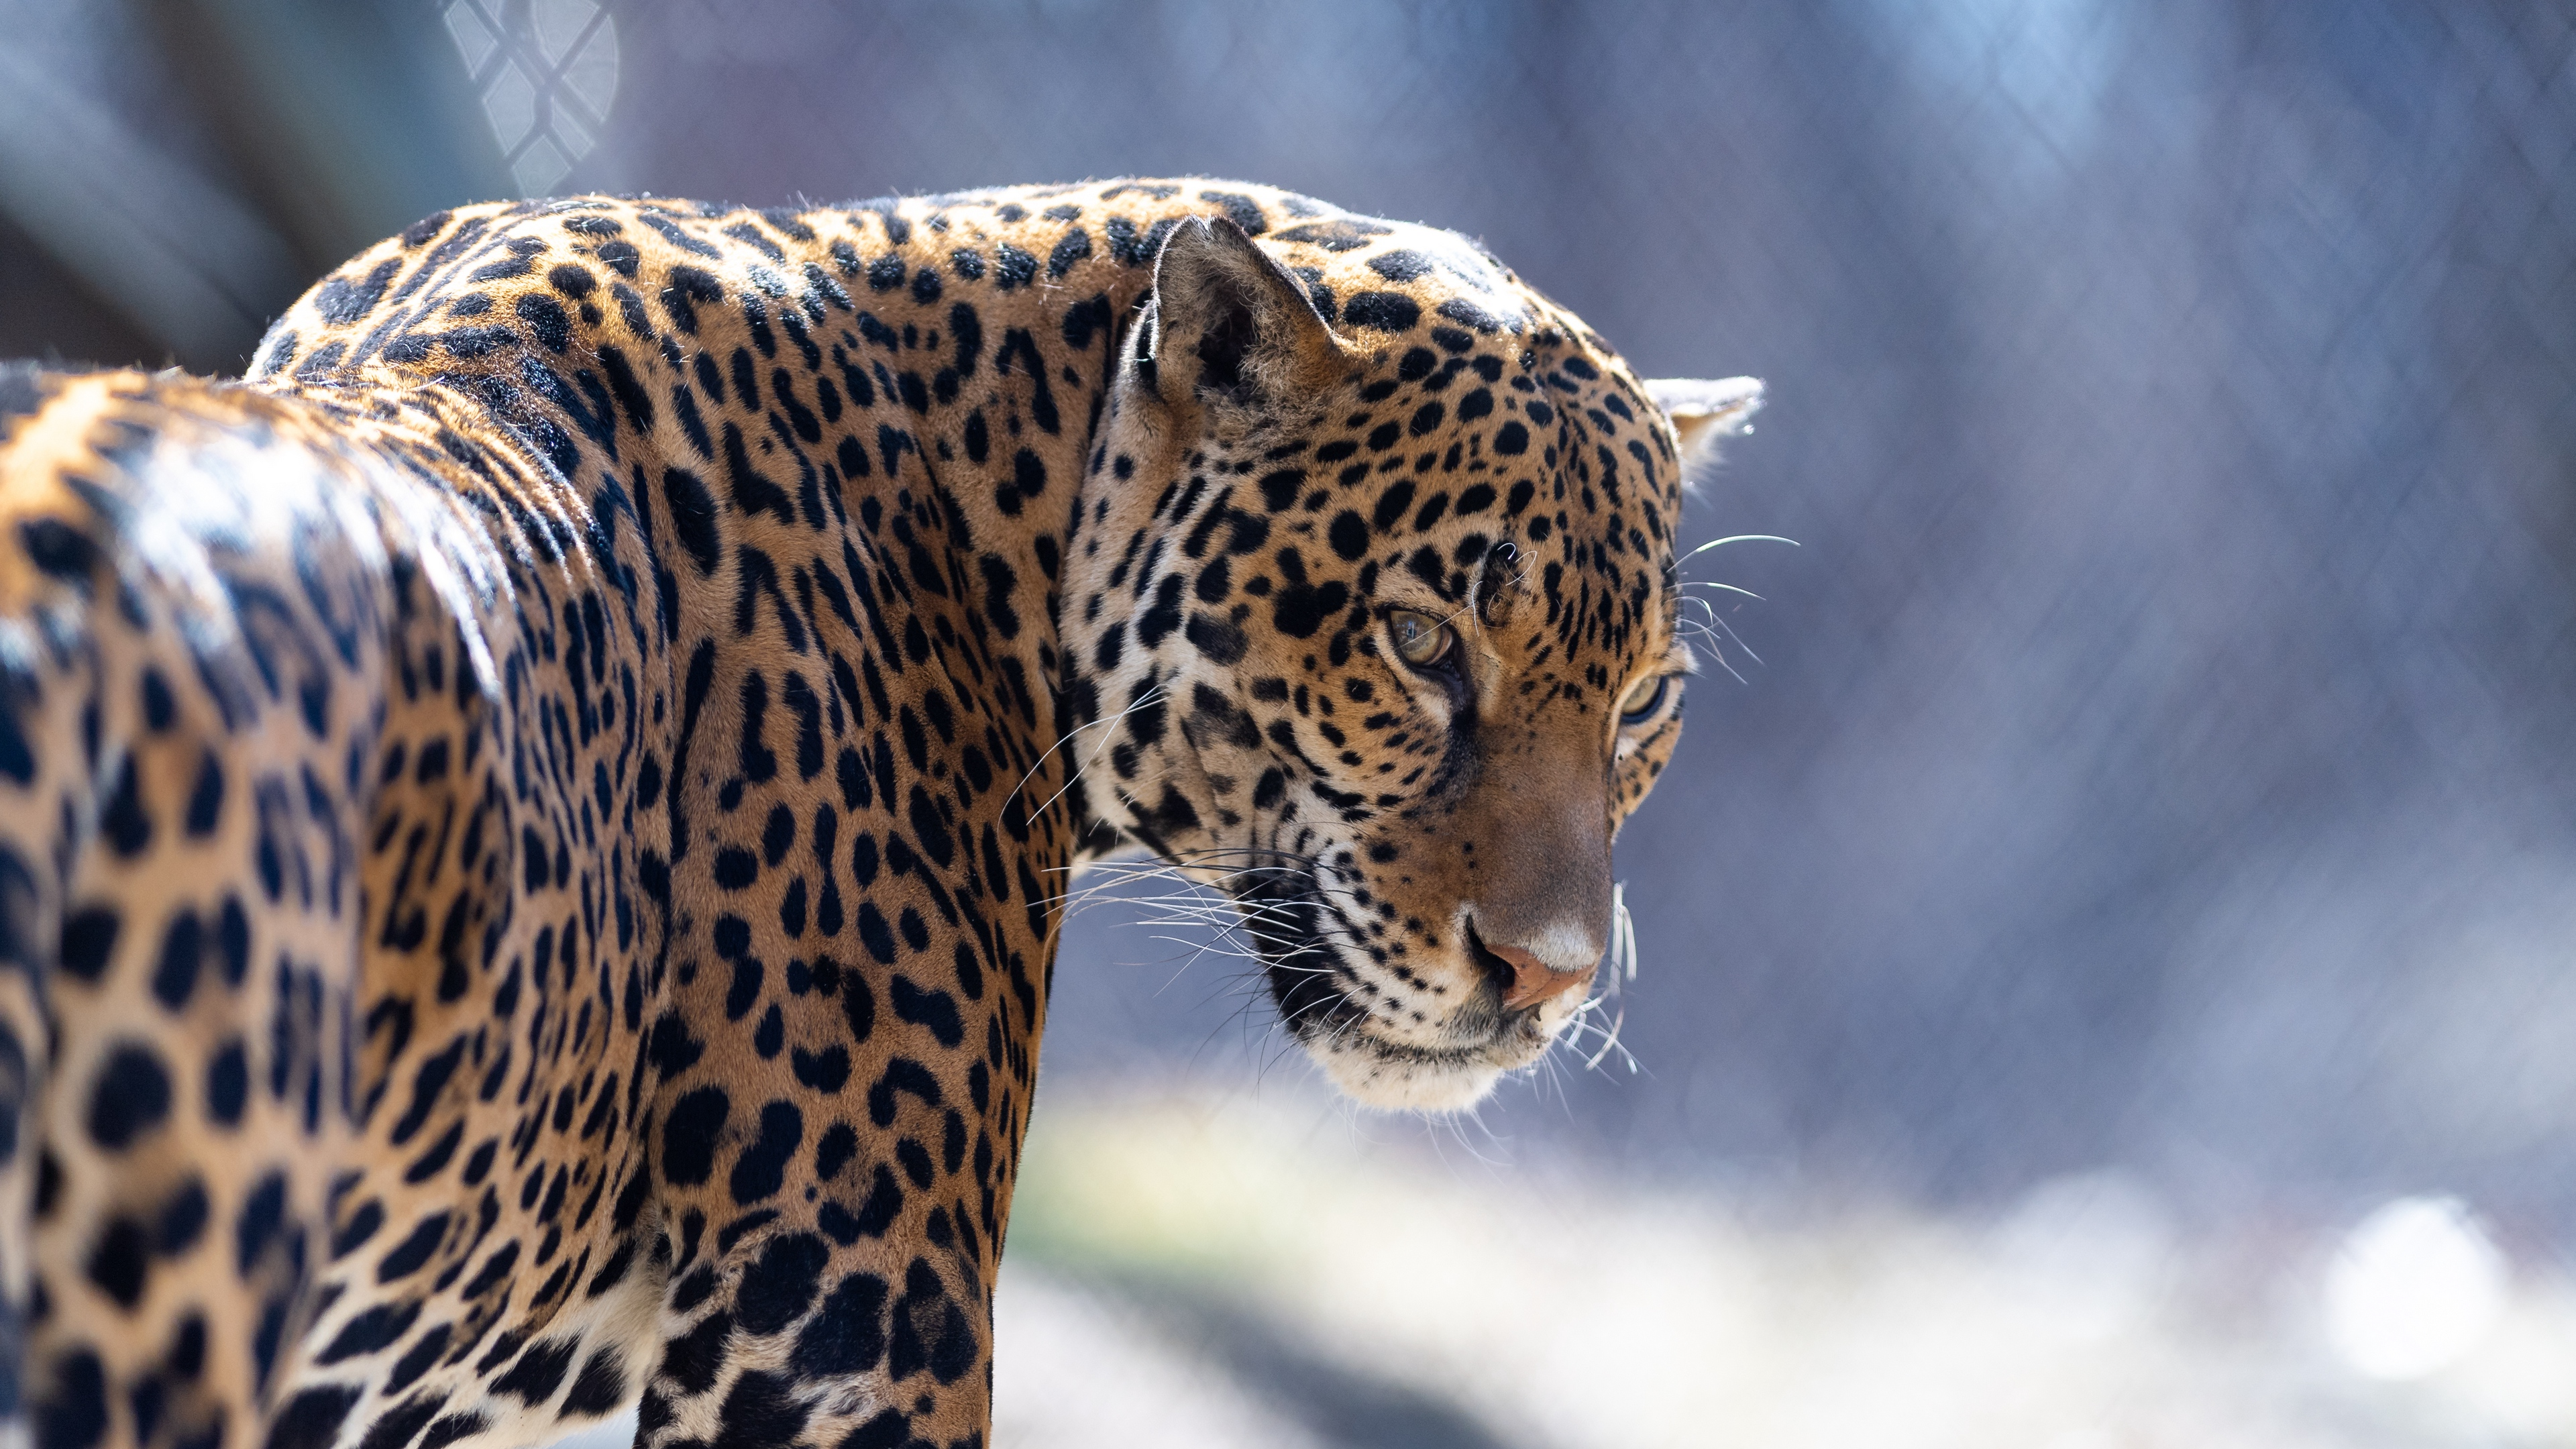 jaguar big cat predator look 4k 1542242810 - jaguar, big cat, predator, look 4k - Predator, Jaguar, big cat